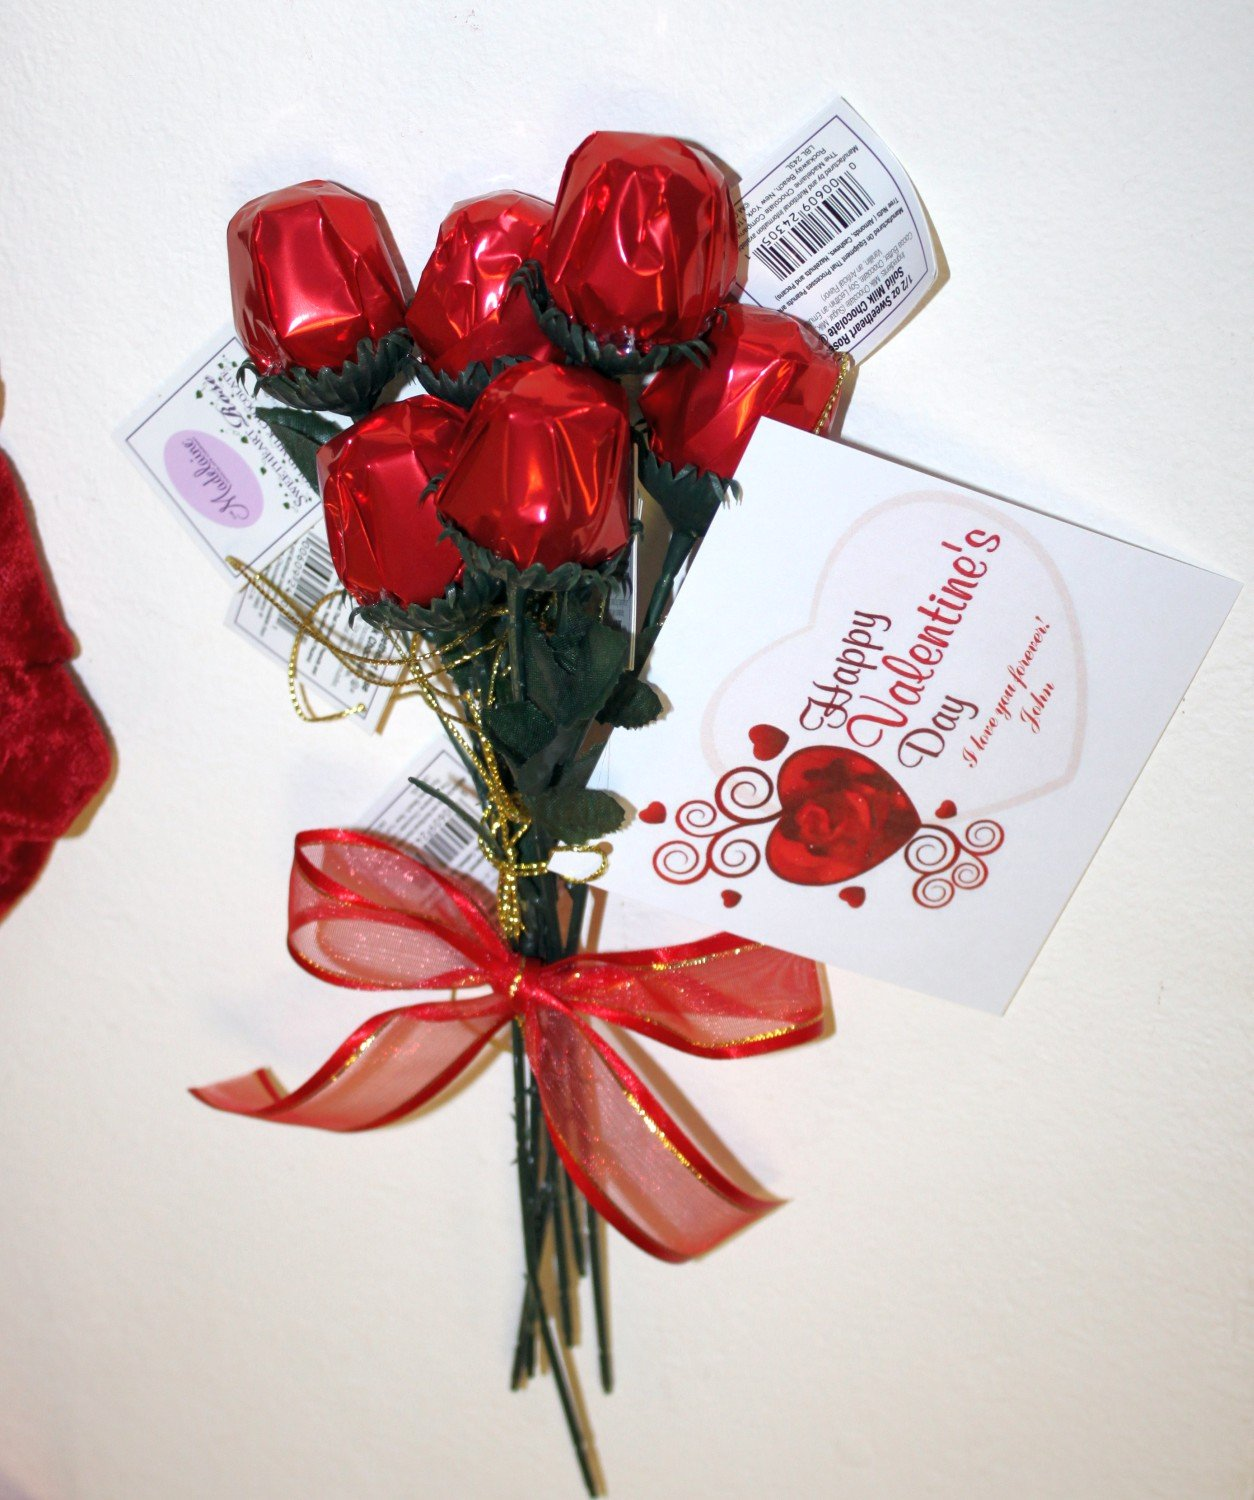 Amazon 12 Roses Valentines Chocolate Bouquet 95 Inch 12 Oz